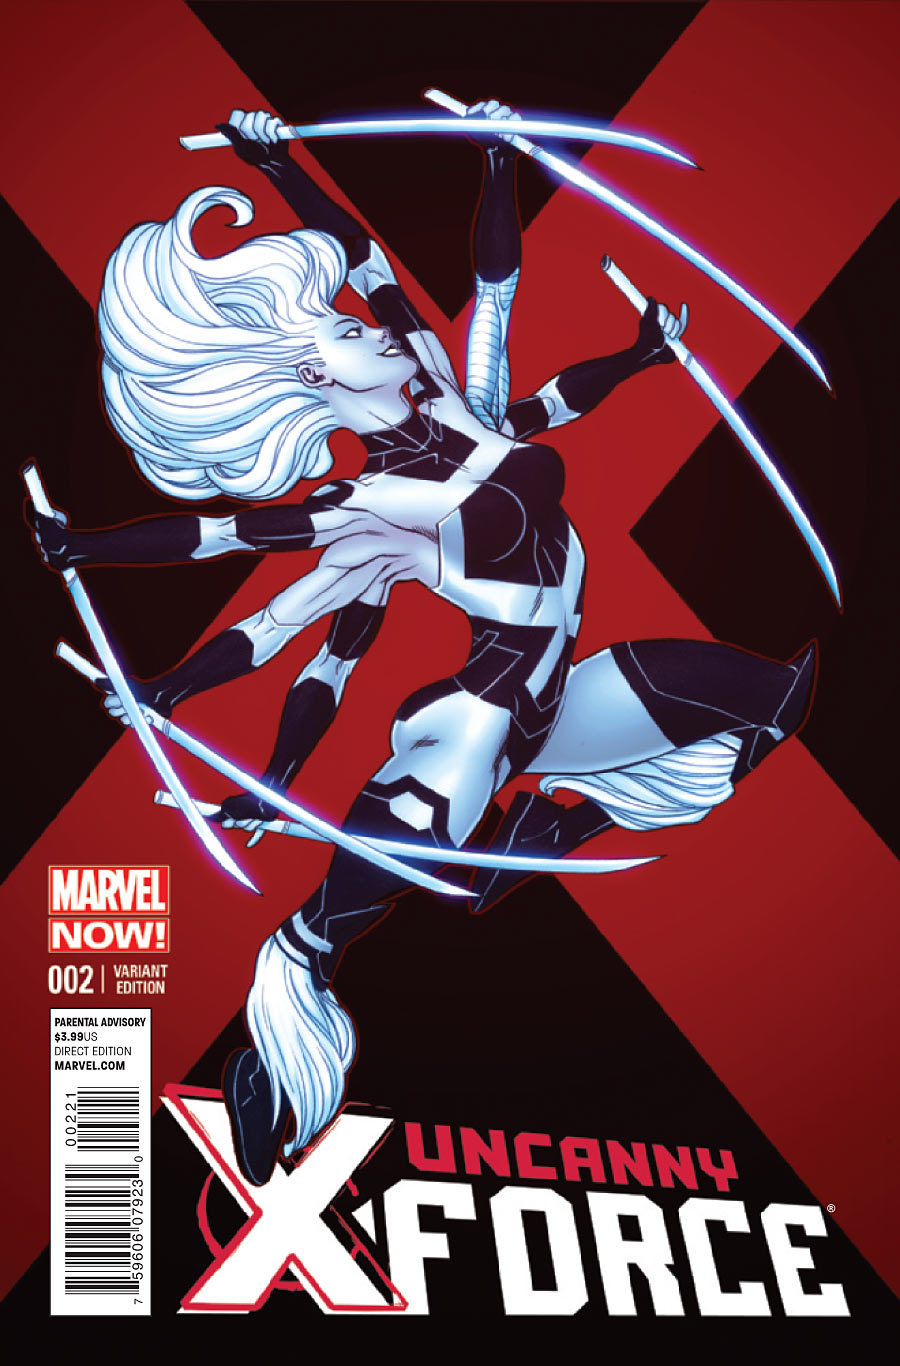 "UNCANNY X-FORCE issue 2 ""GIMME SHELTER"" on sale today! In comic book stores or online."